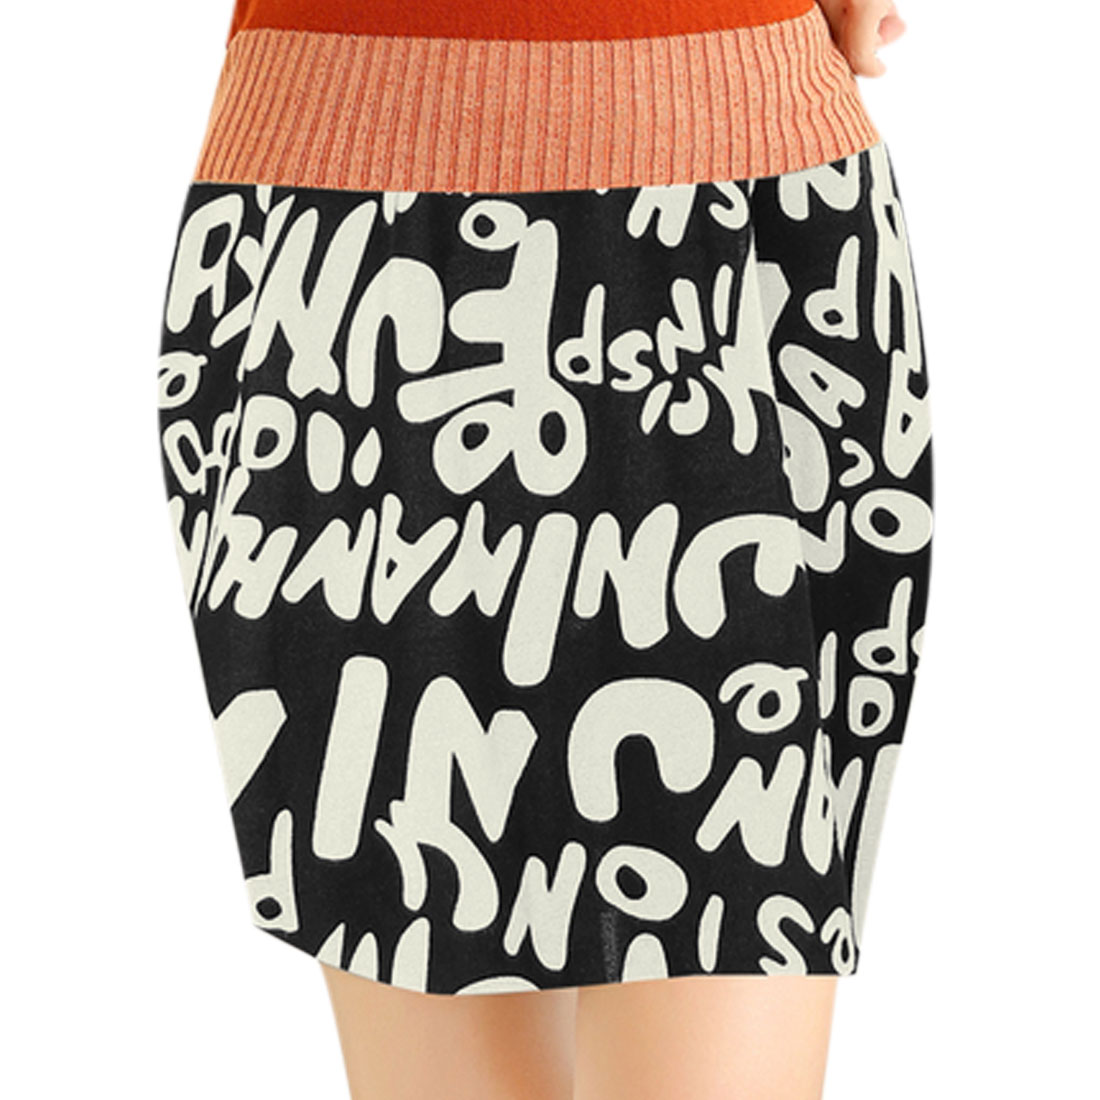 Allover Letters Print Stretch Waist Mini Skirt for Lady Black XS